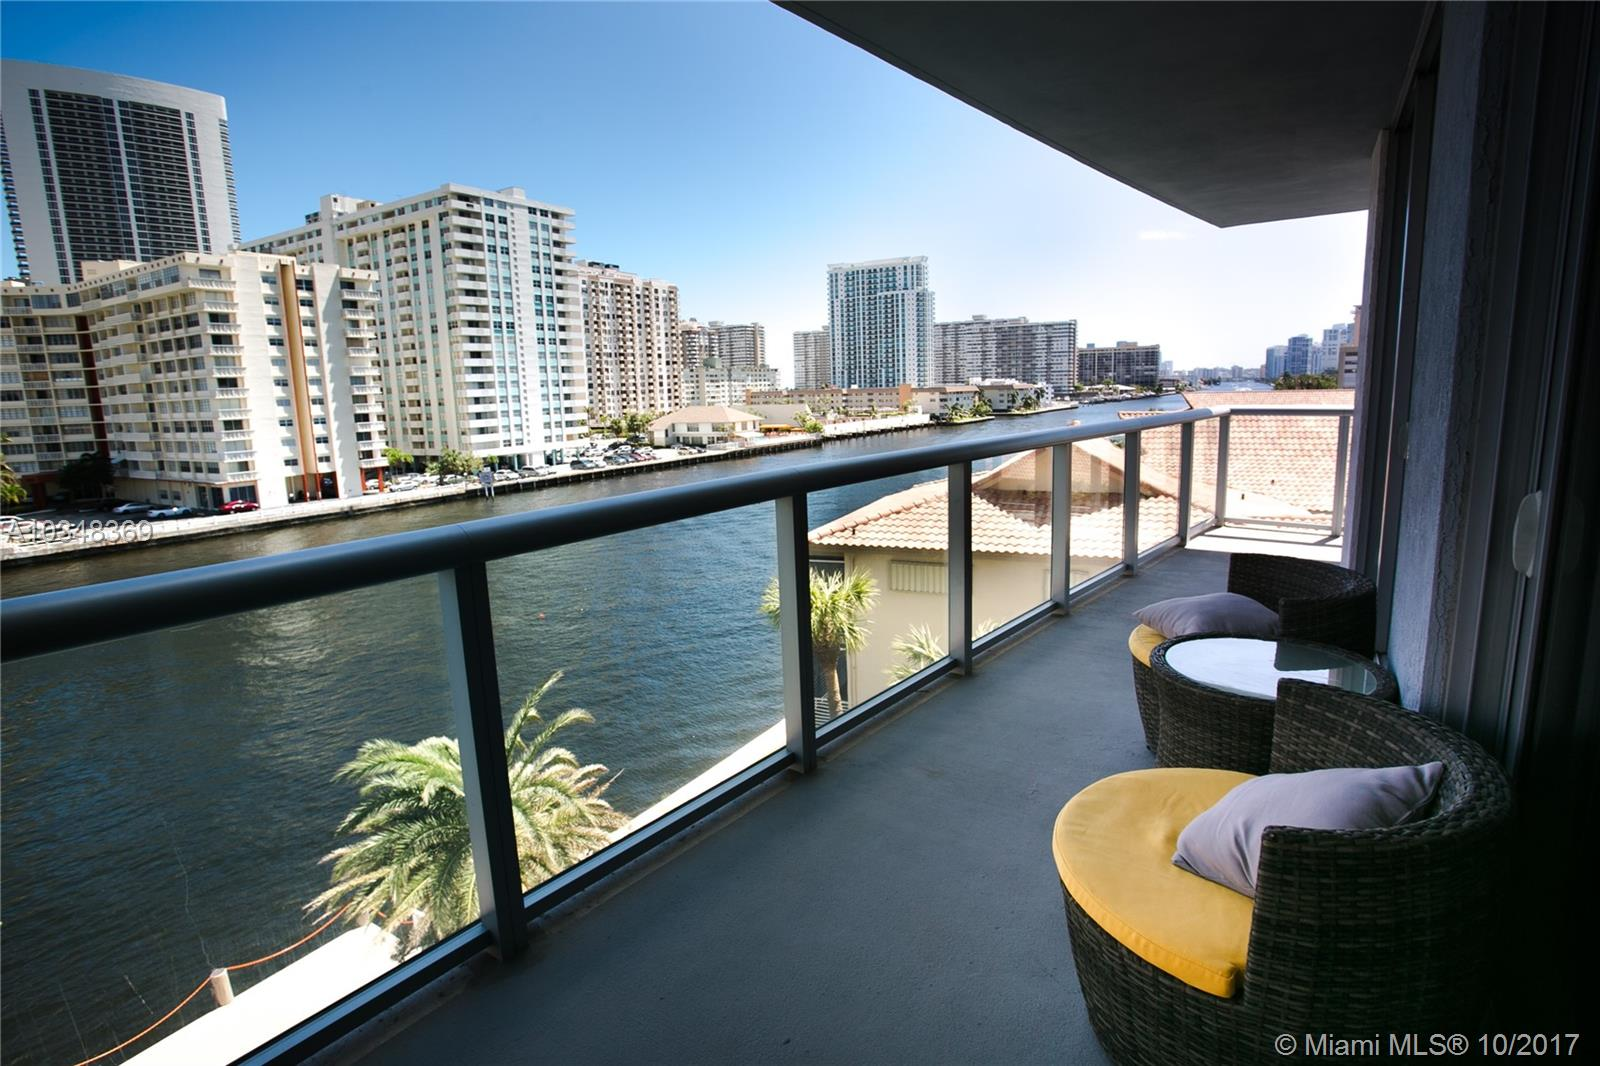 Beautiful Hallandale Beach. Beachwalk Condominium, Fabulously designed modern 3/3, corner home with private entrance, porcelain floors throughout, great terrace w/glass railing, 2 infinity edge pools, one on the Roof Top! Cielo Club 34th floor, fully equipped fitness center, room service, housekeeping, water sports. AIRBNB APPROVED! No Rental Restrictions. Hallandale Beach conveniently located between Ft Lauderdale, Miami, Aventura with access to Fort Laud/Hollywood, MIA, Port Everglades, Port of Miami, and I-95. as well as beautiful beaches, exciting par-mutual wagering. Hallandale Beach offers a wide choice of sporting activities year round. Evenings of fine or casual dining and night club,entertainment for all ages can be found, shopping centers, individual boutiques and malls.